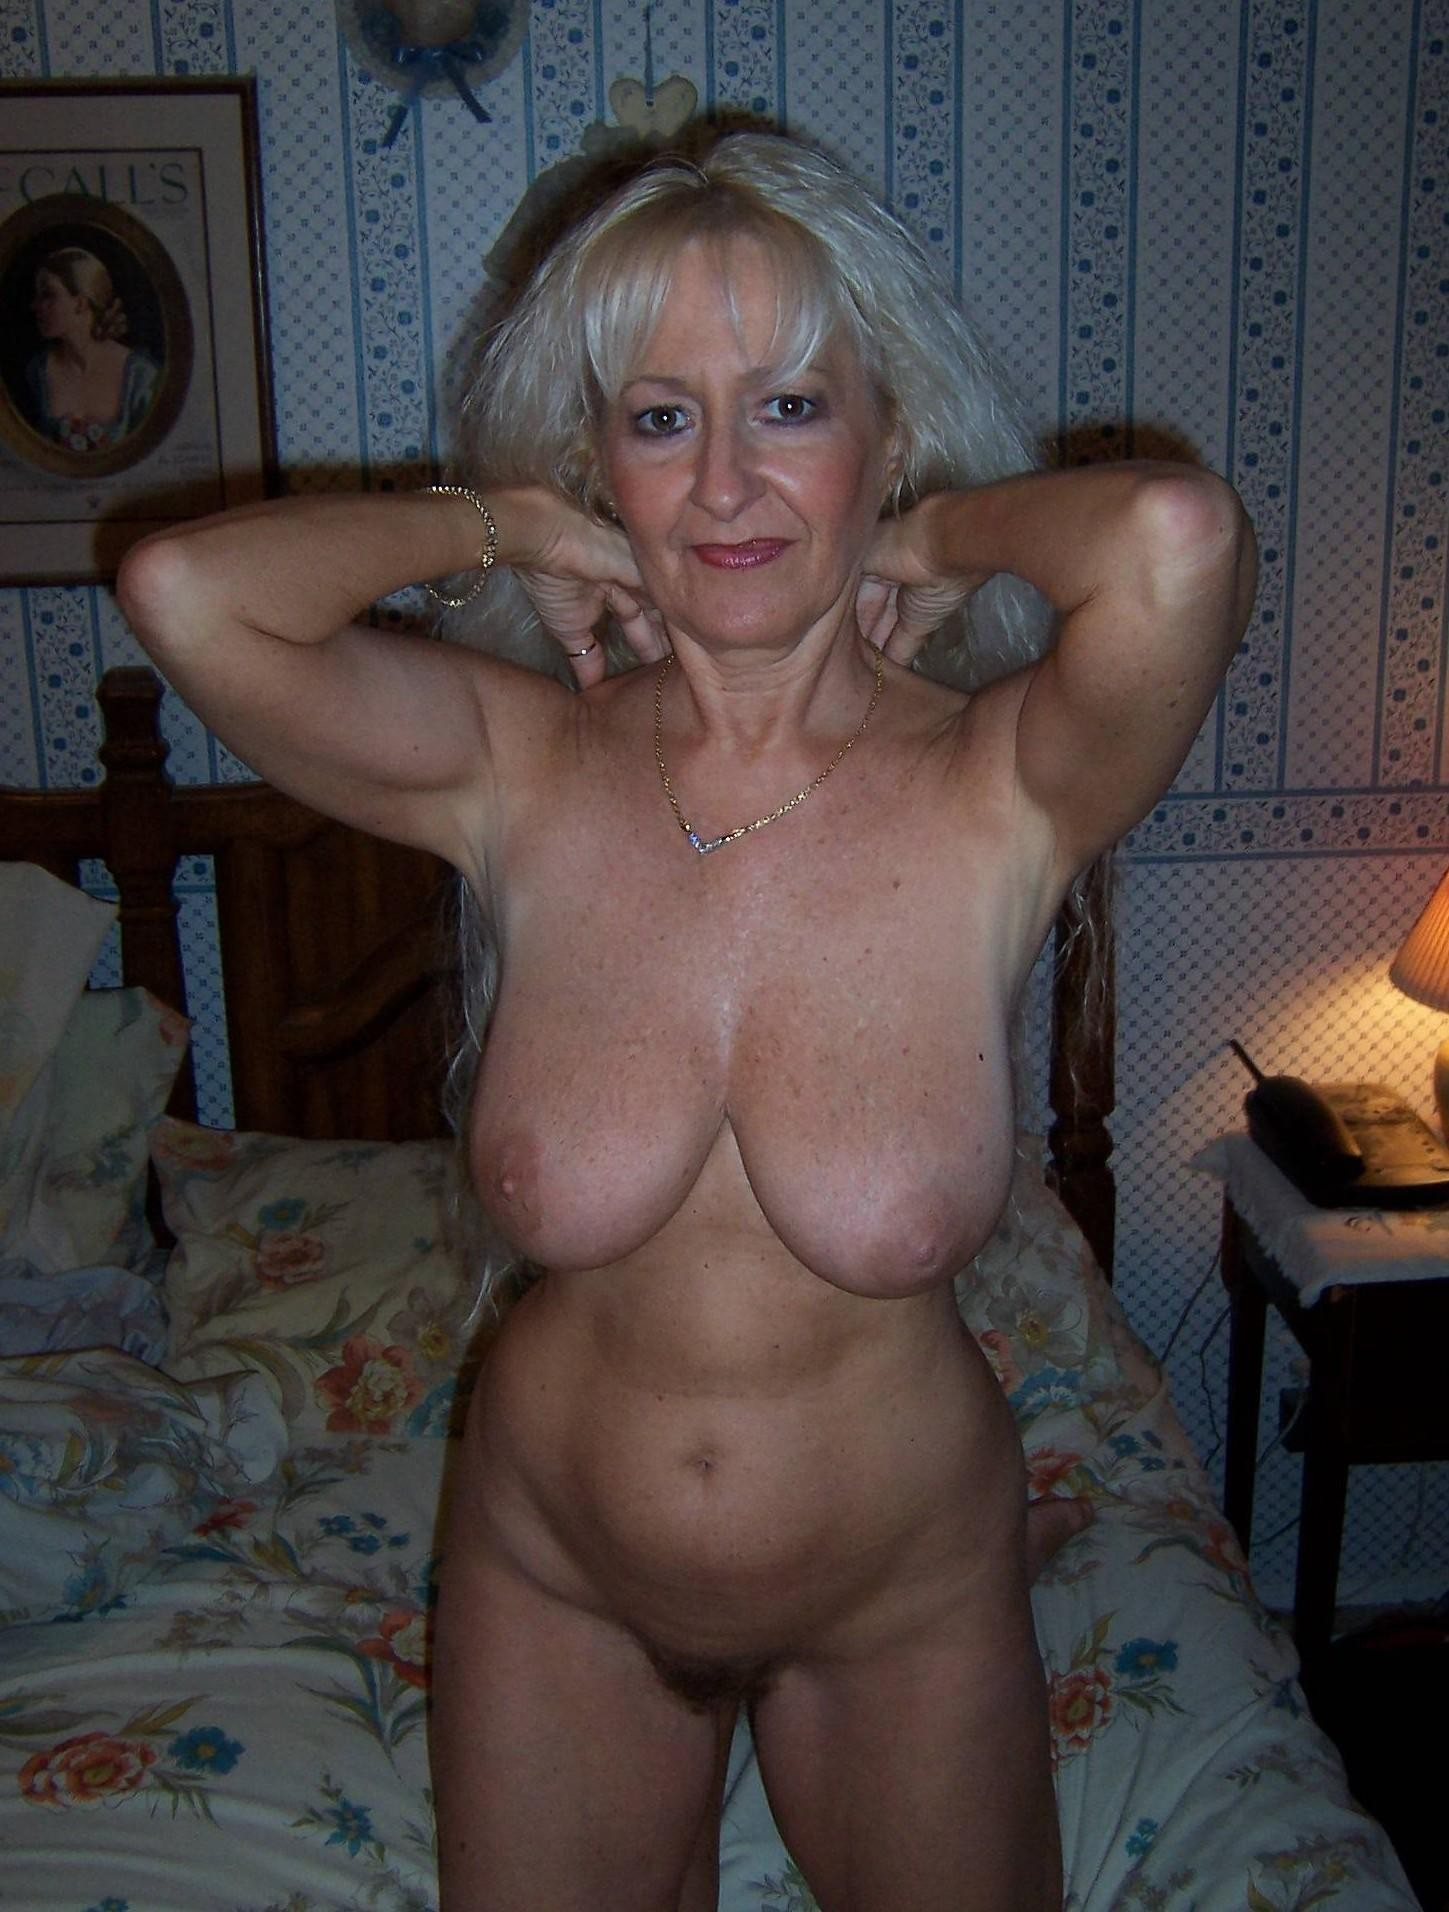 free older amature adult pictures